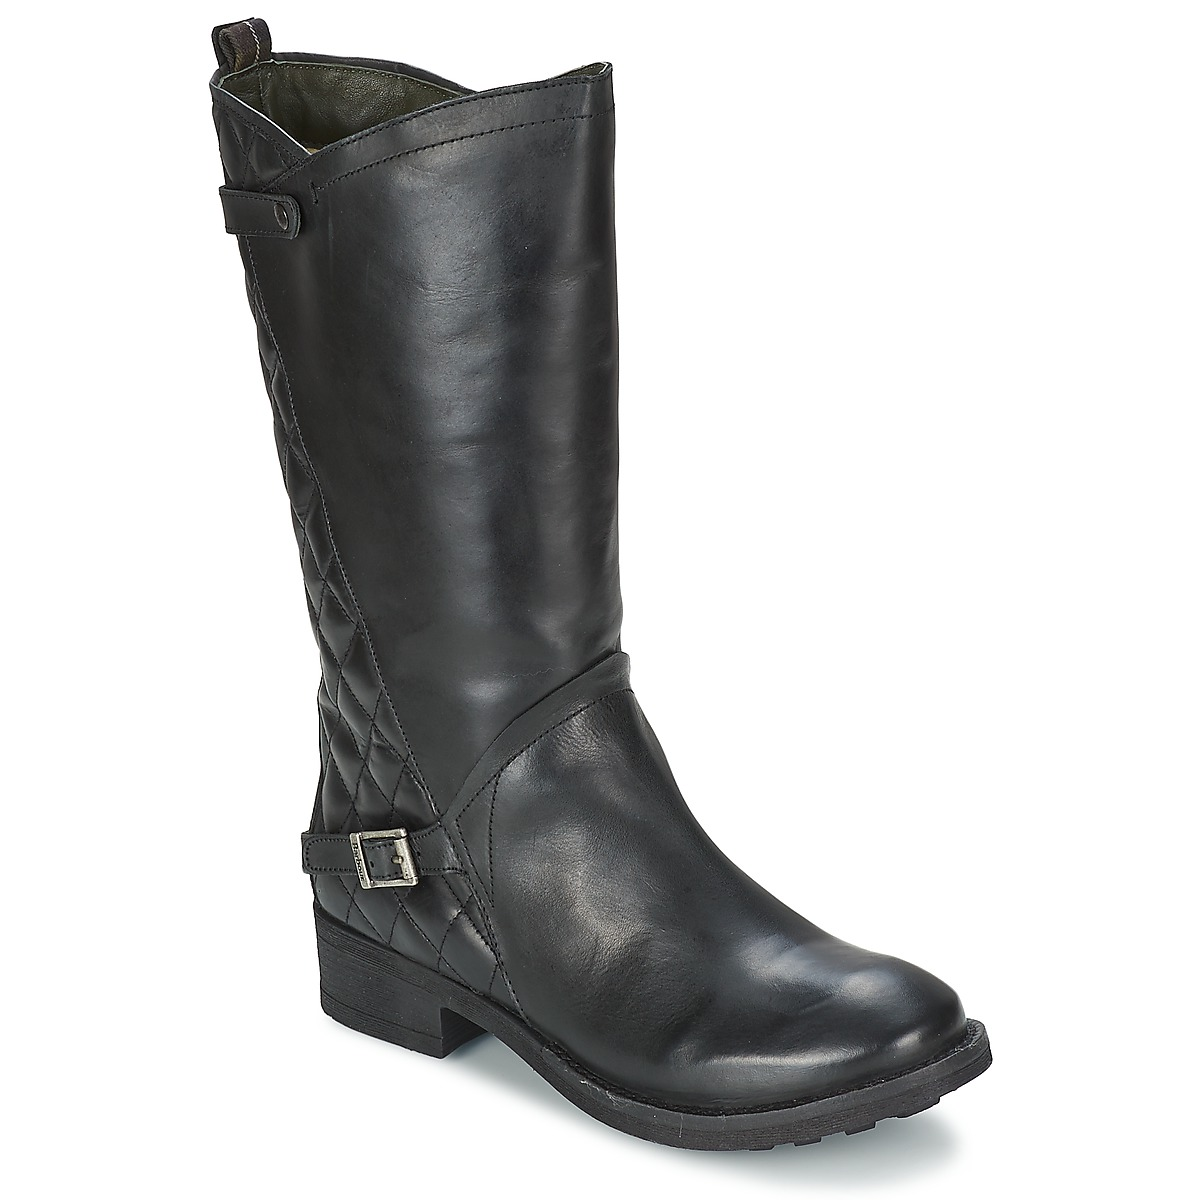 Botte ville Barbour HARLEY Noir